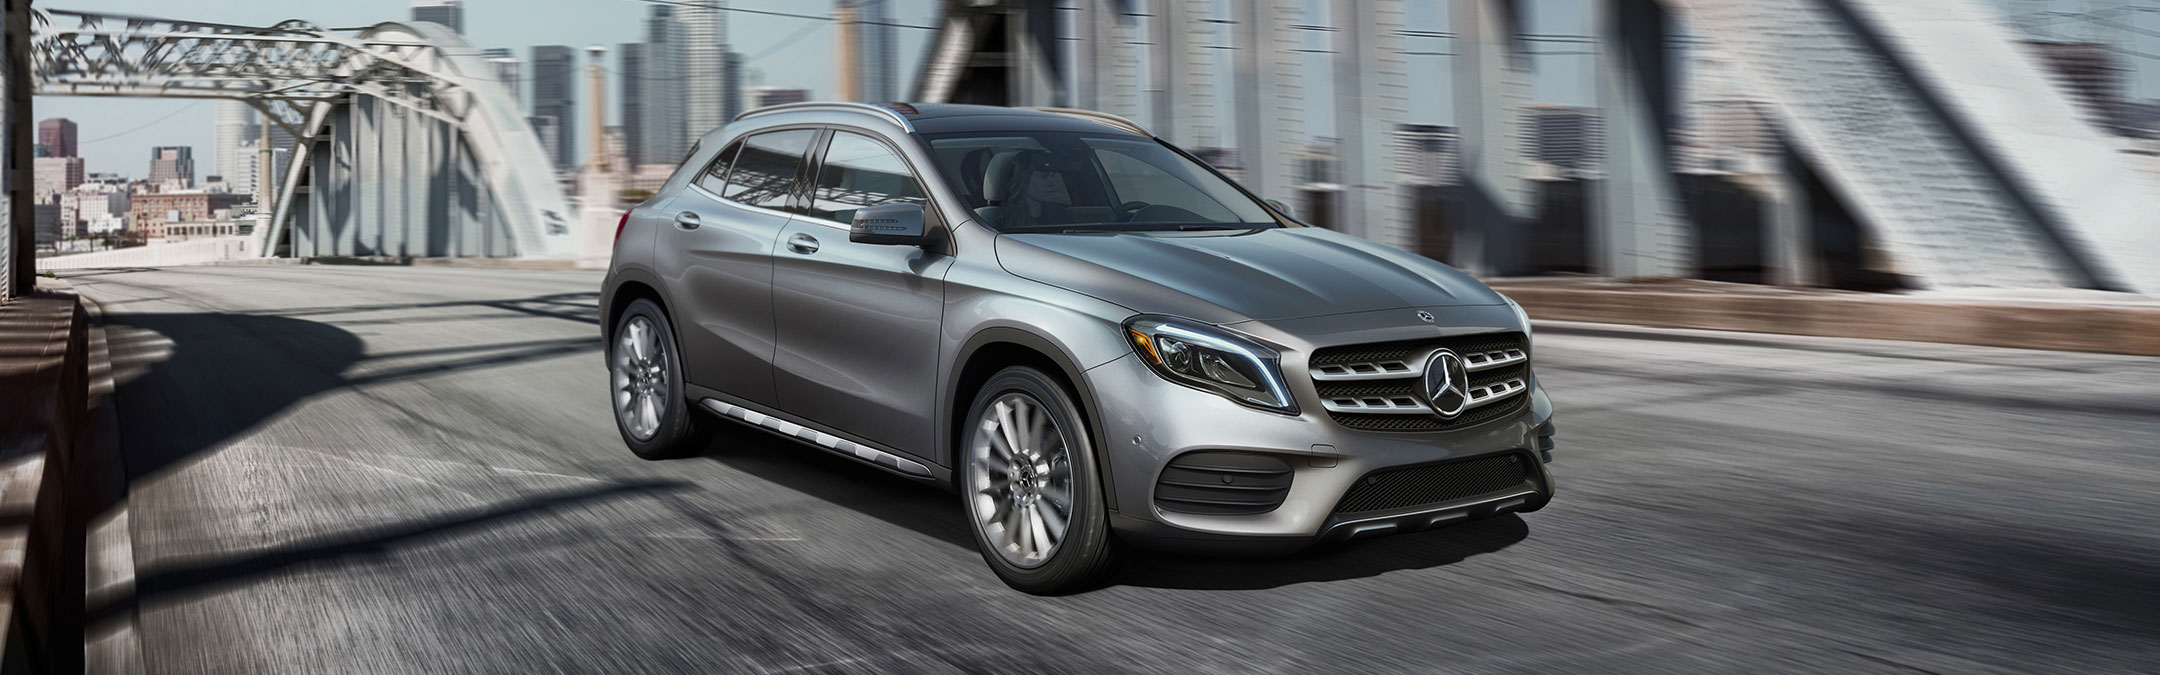 2018 mercedes diesel canada new car release date and for Mercedes benz suv diesel